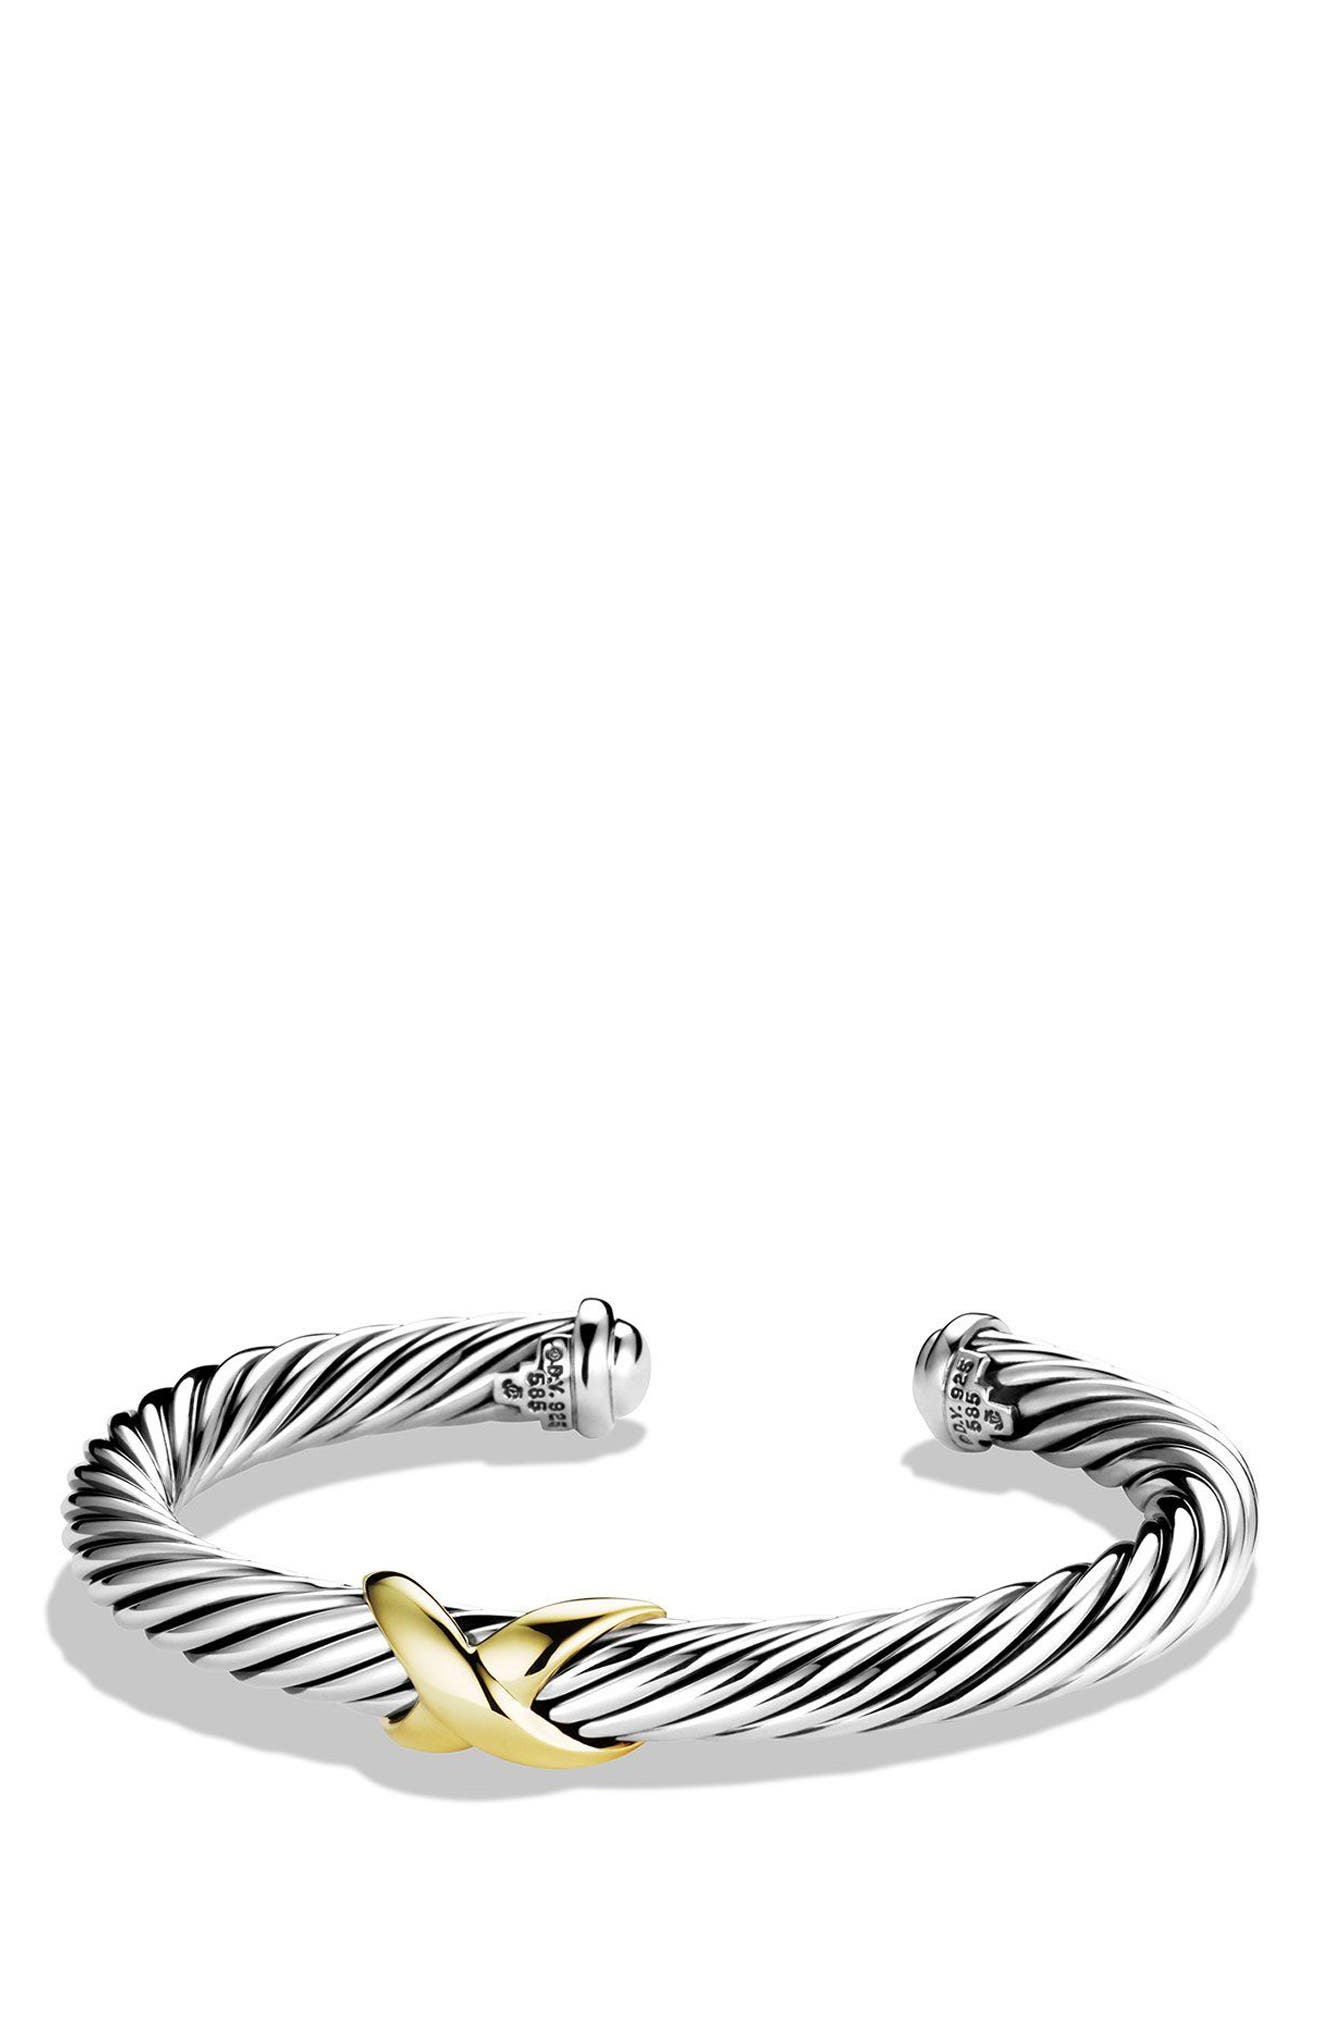 X Bracelet with 14K Gold,                             Main thumbnail 1, color,                             Two Tone